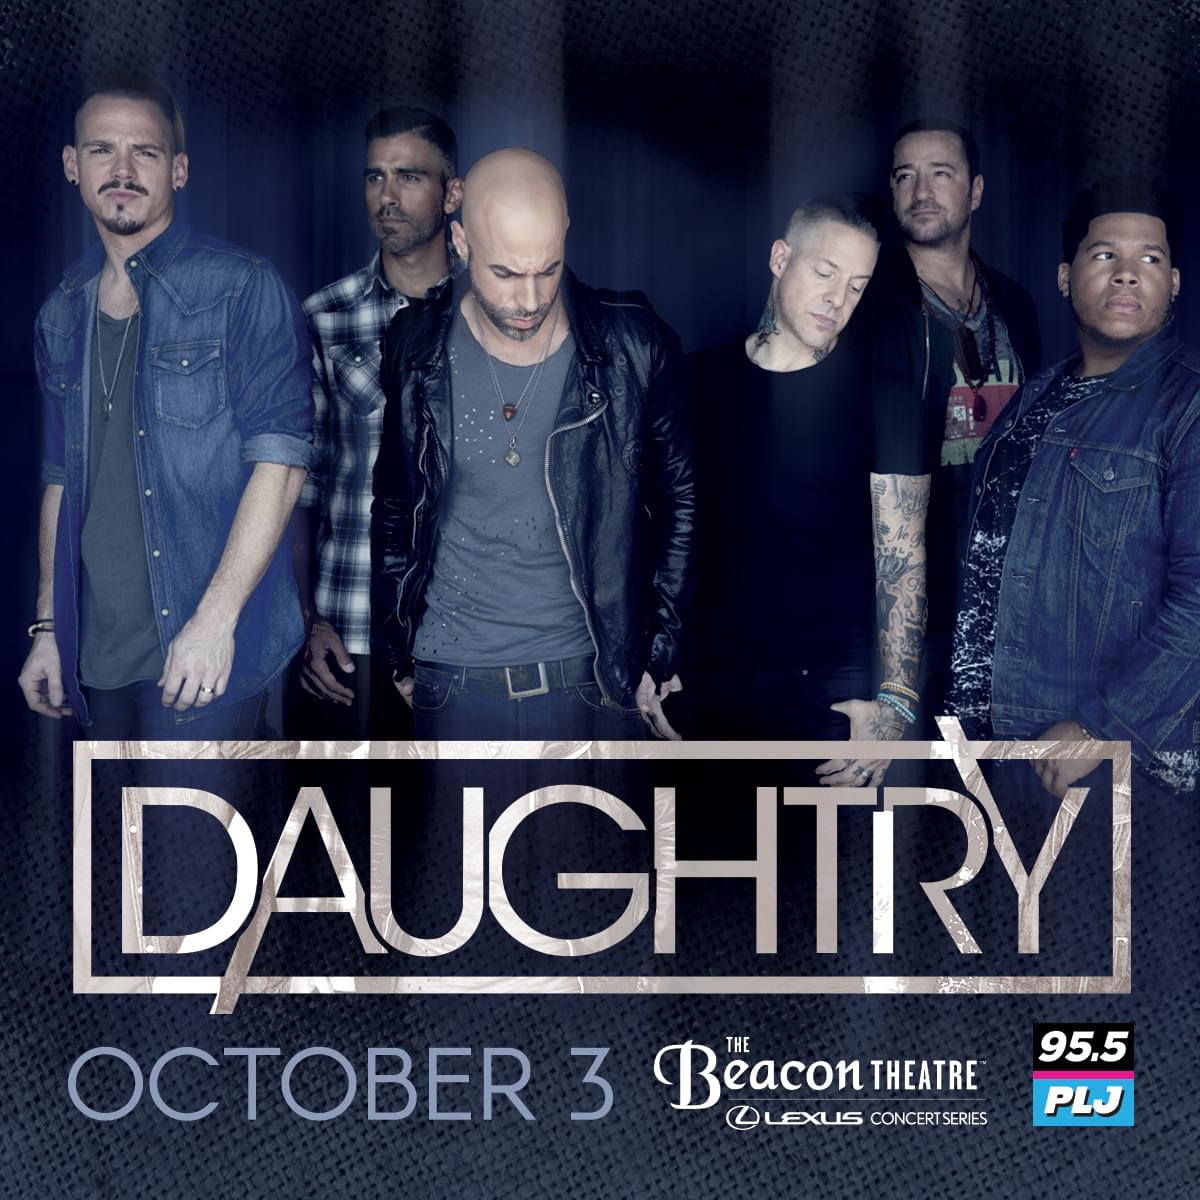 Win Tickets to 95.5 PLJ Presents Daughtry!